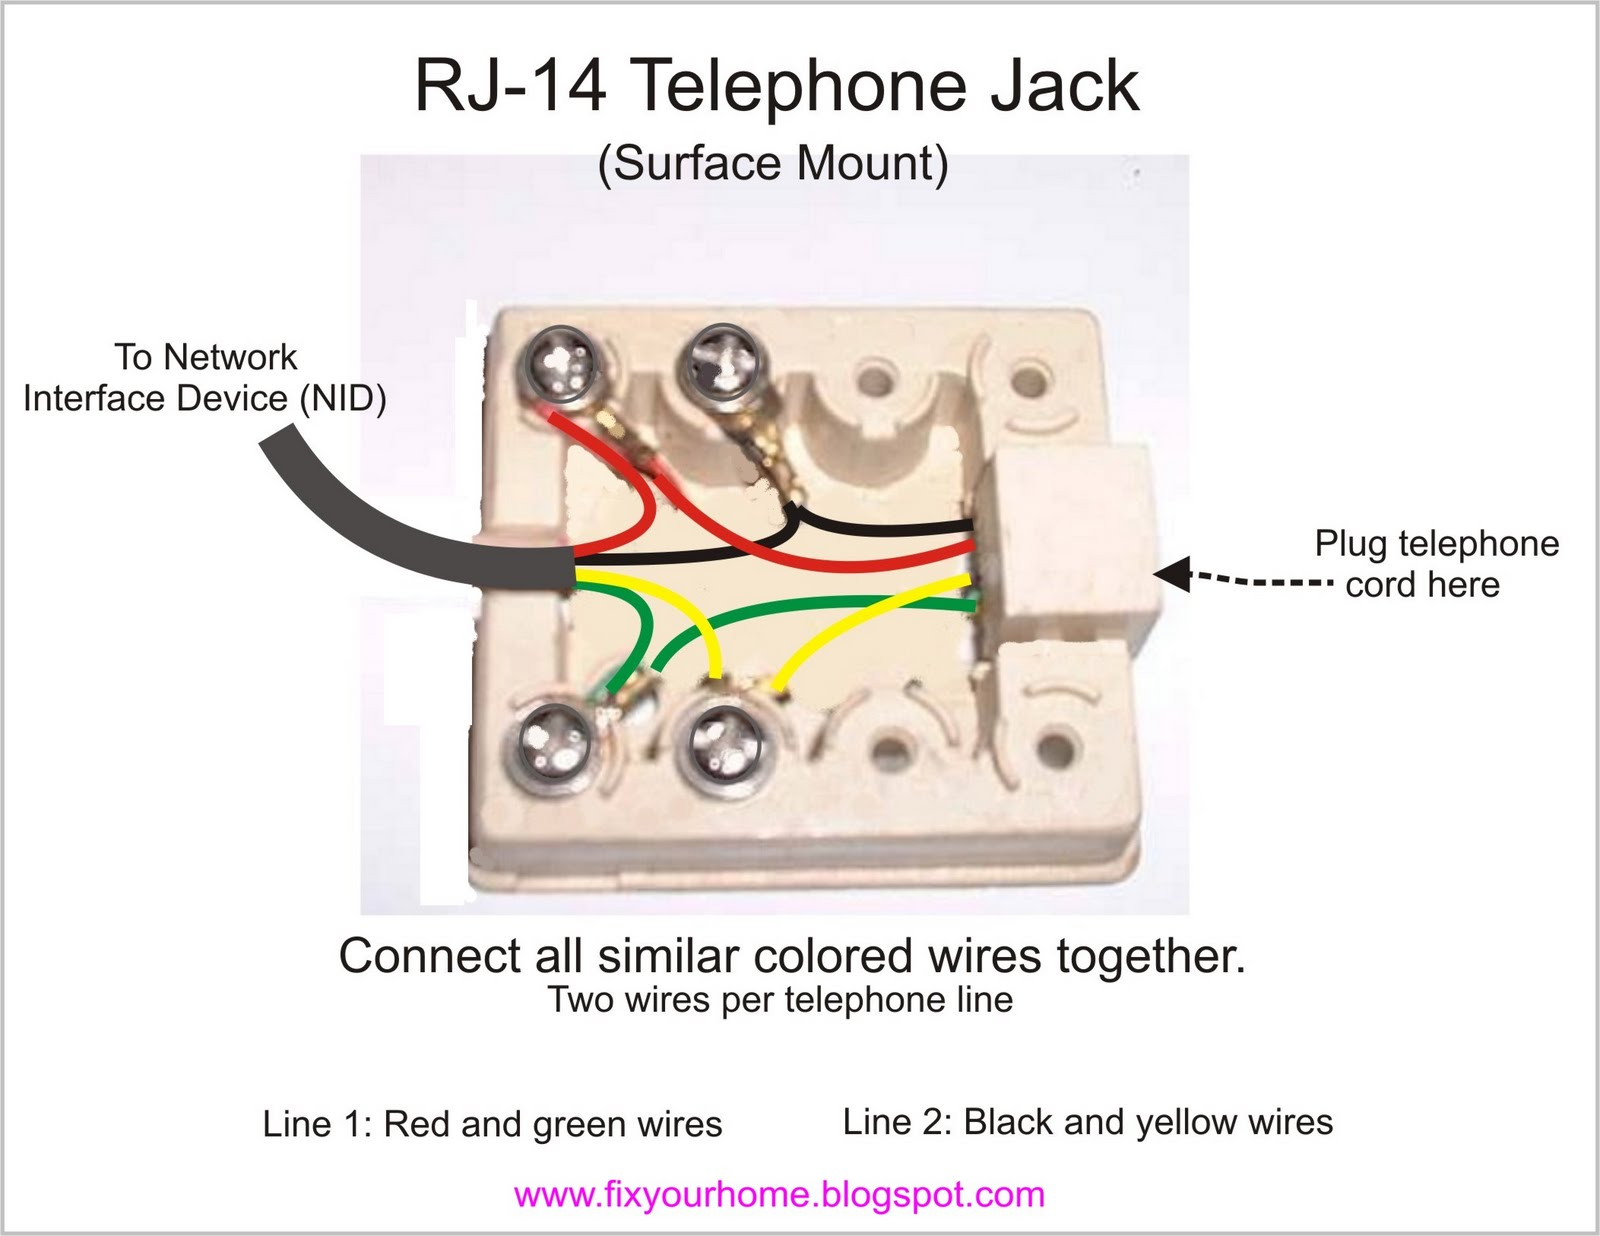 phone cable wire diagram images phone wire a surface mount telephone jack